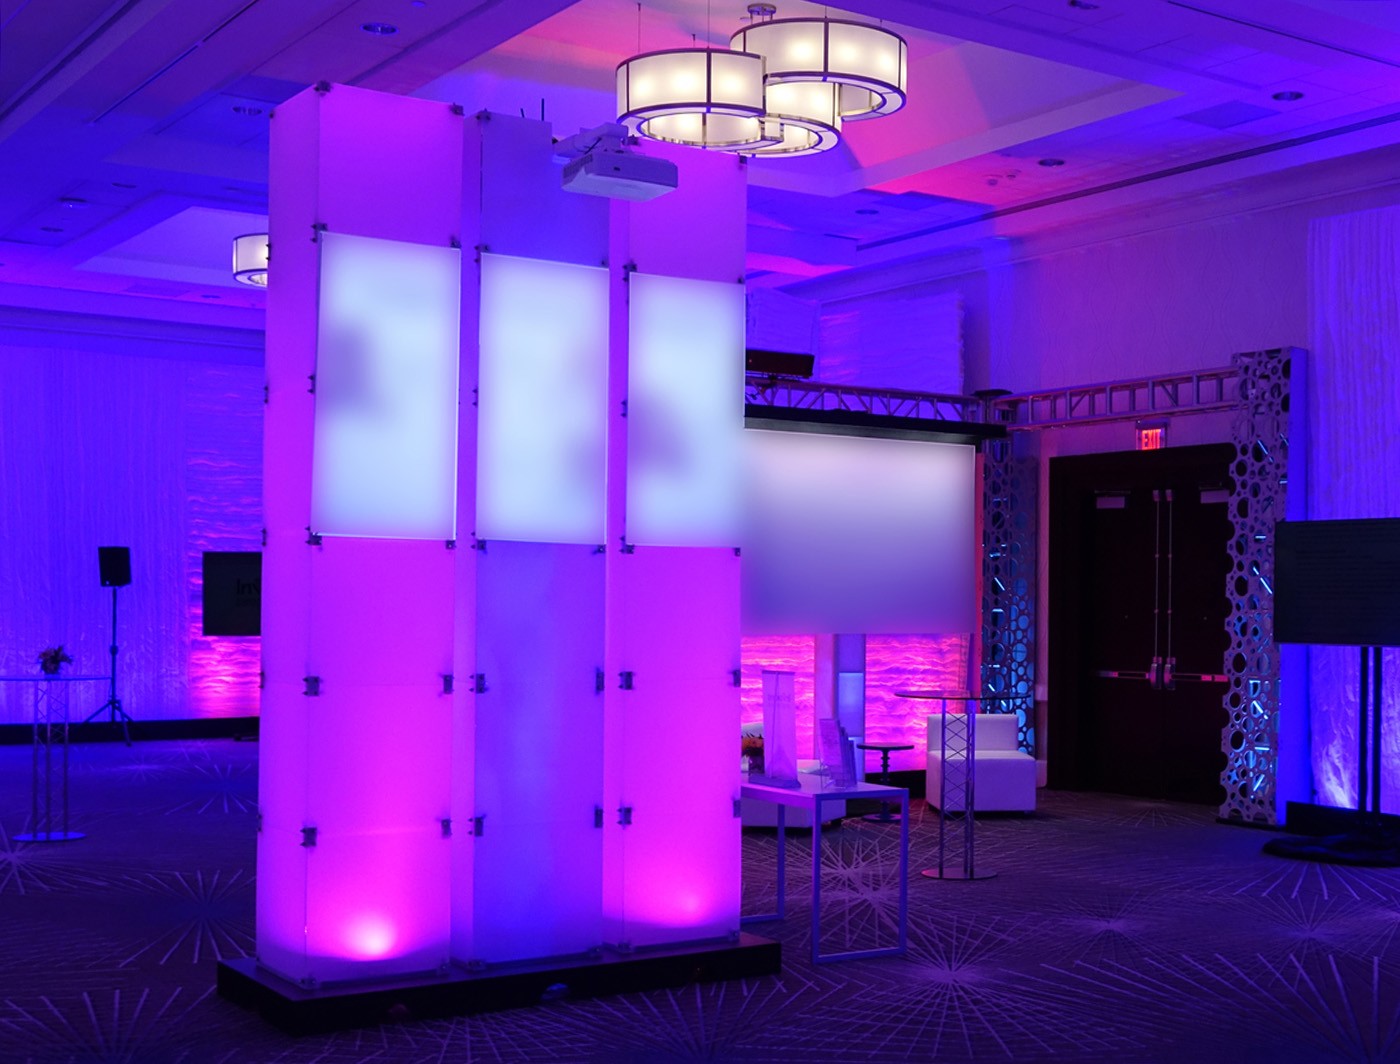 Frosty Supercolumns work together to illuminate corporate displays